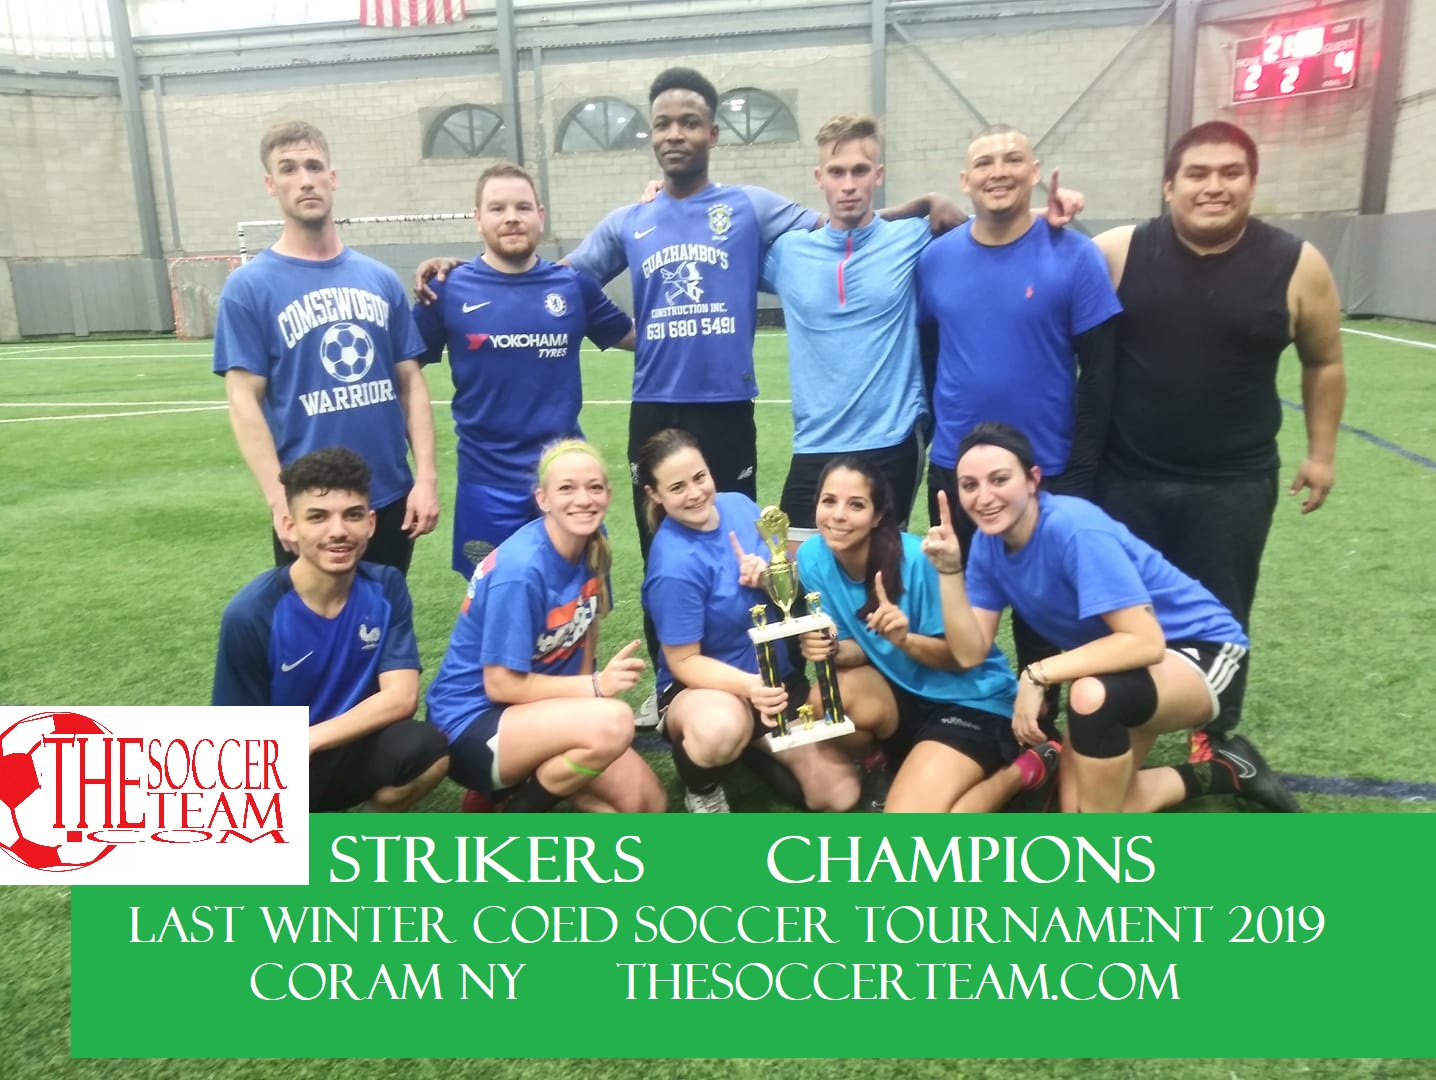 strikers courtney champs